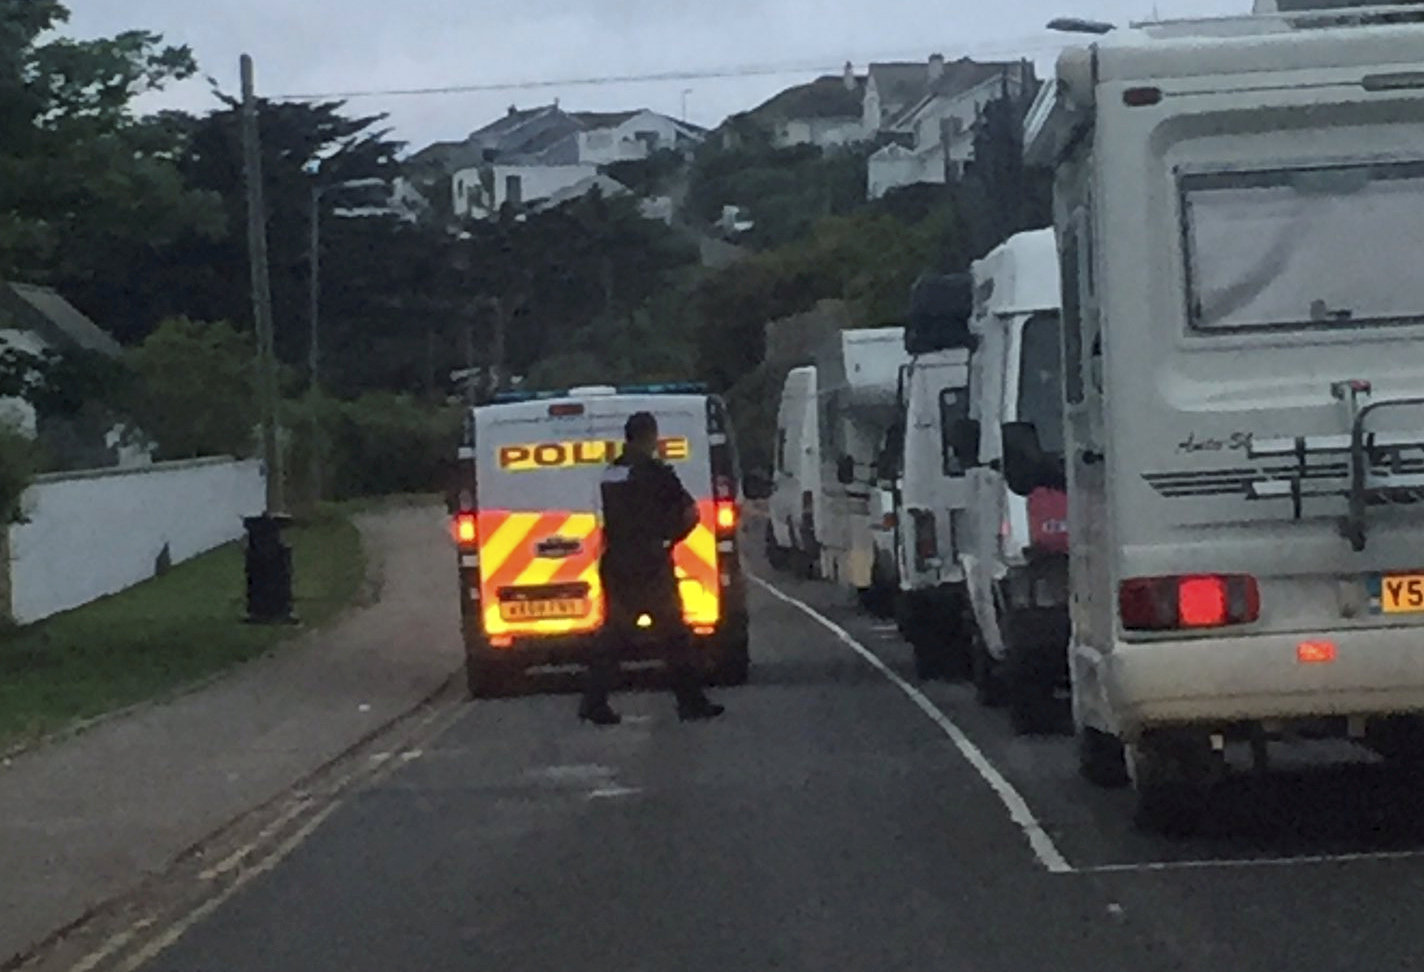 Police gave people who had camped in Newquay, Cornwall, an early morning wake-up call. (Picture: SWNS)